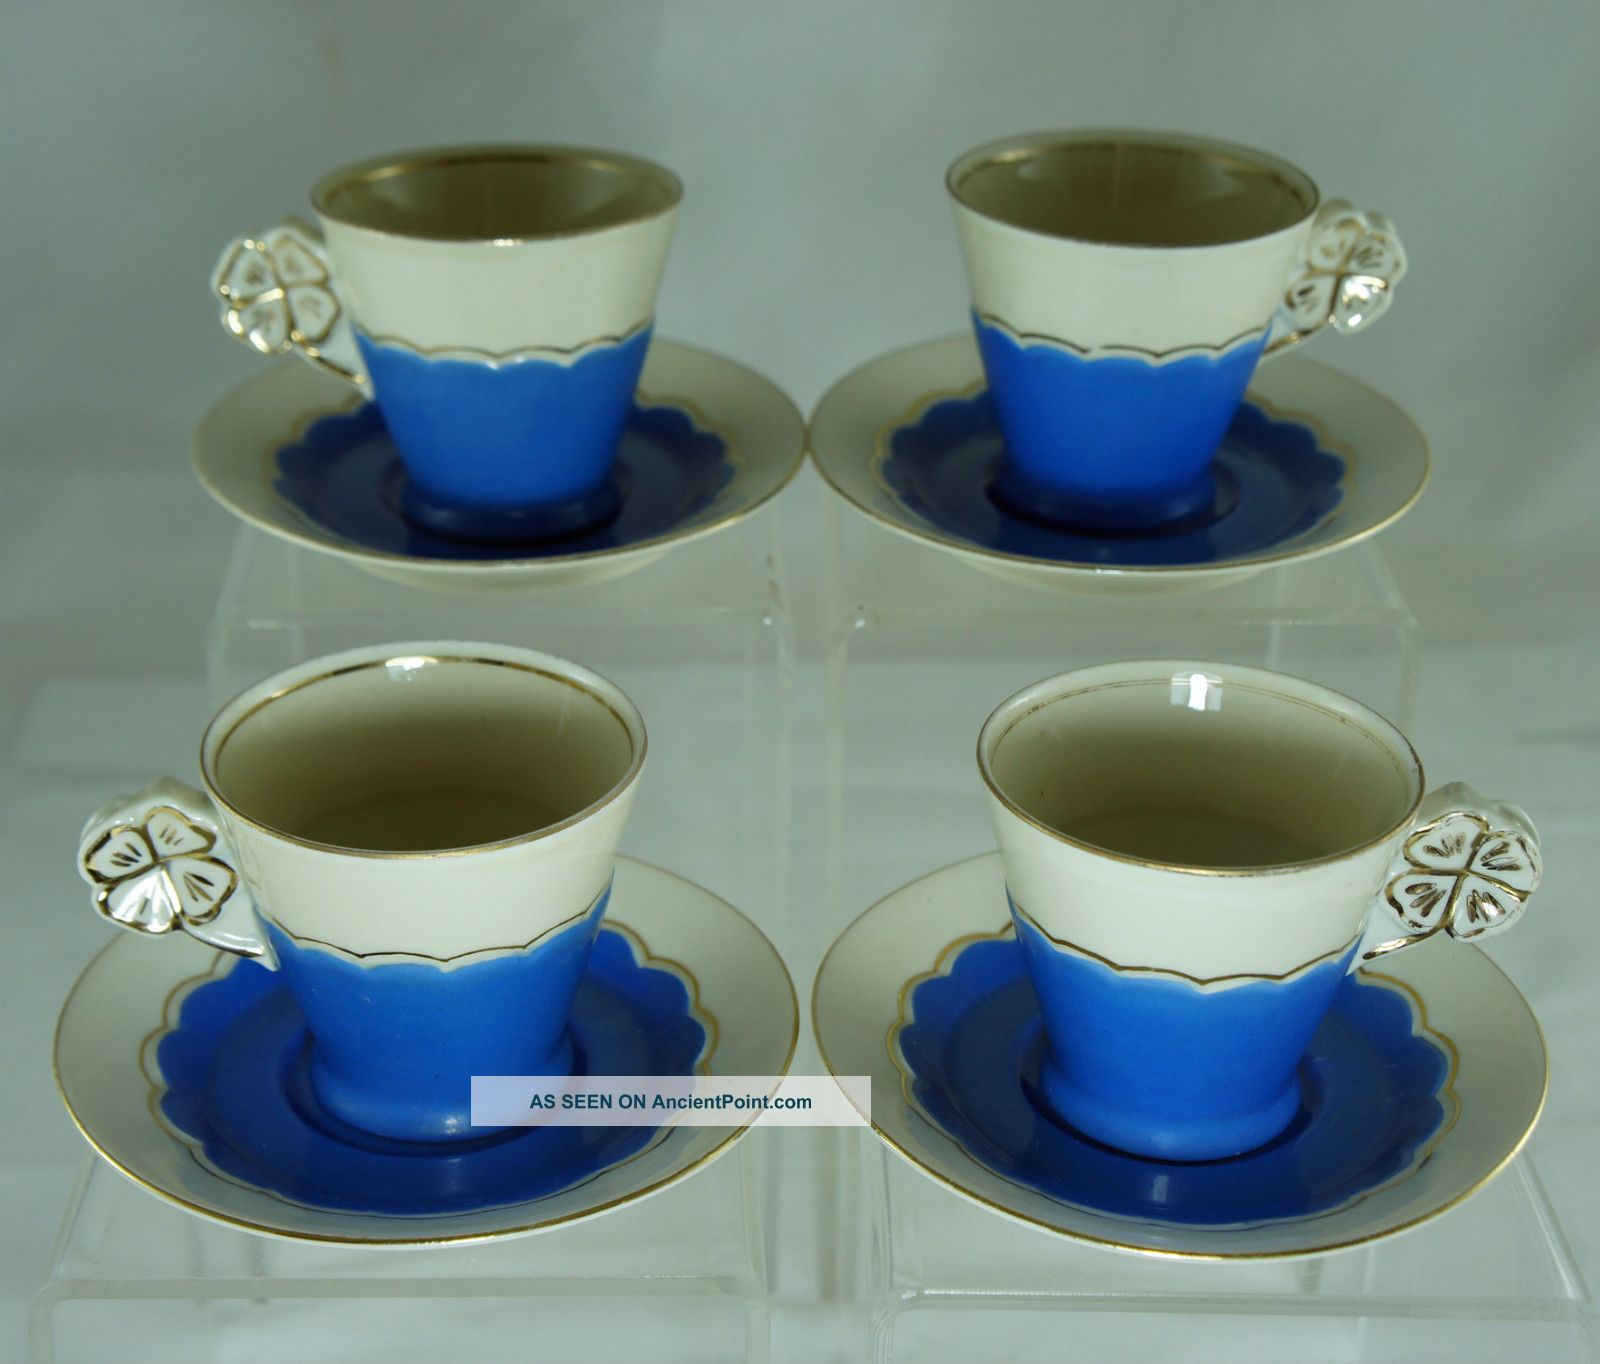 Vintage 60s Baby Blue & Off White,  Gold Rims Demitasse Cup & Saucer Set Of 4 Cups & Saucers photo